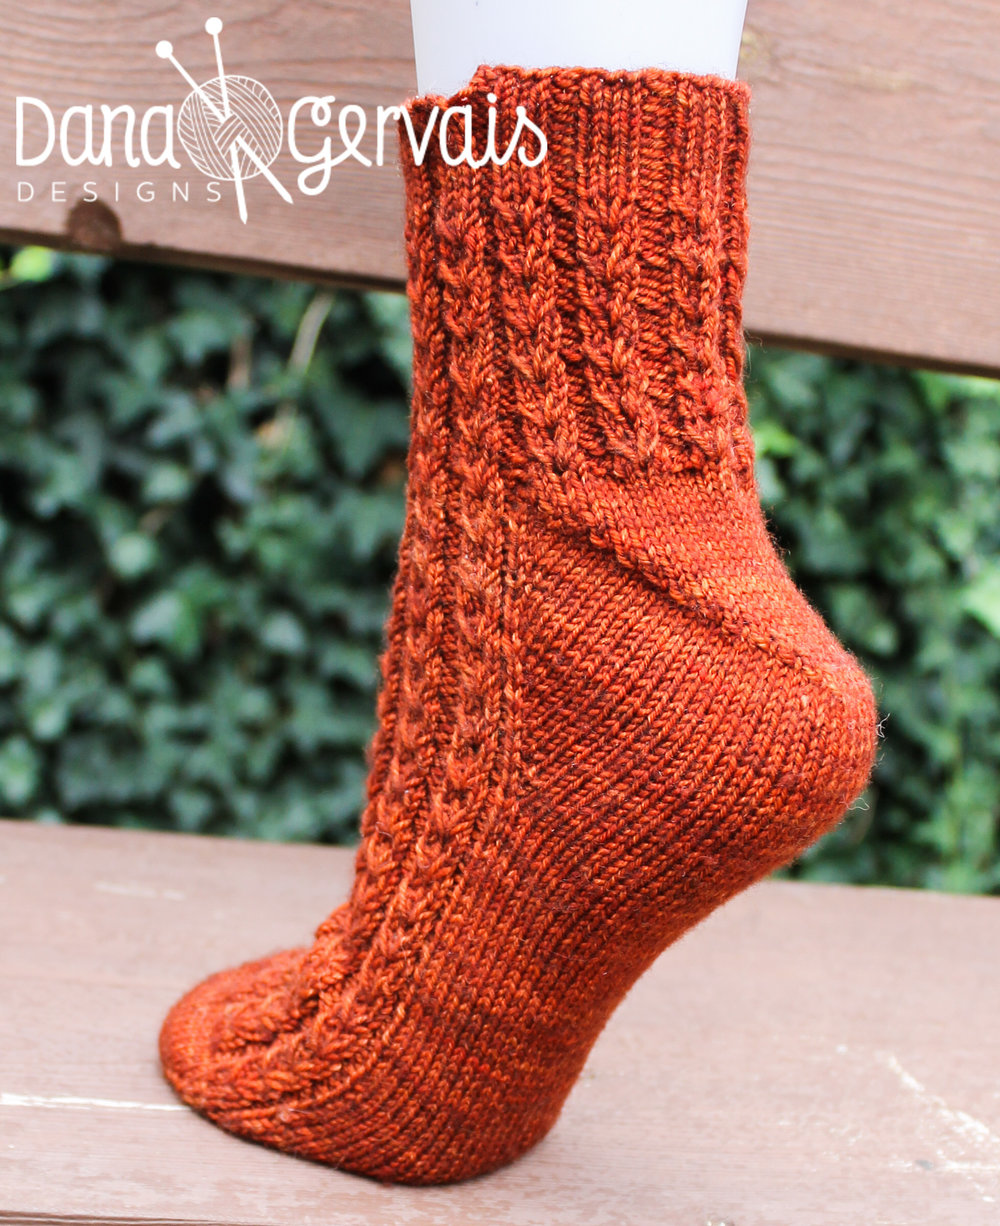 Caffeine is an example of a sock that uses Strong/Fleegle heel construction